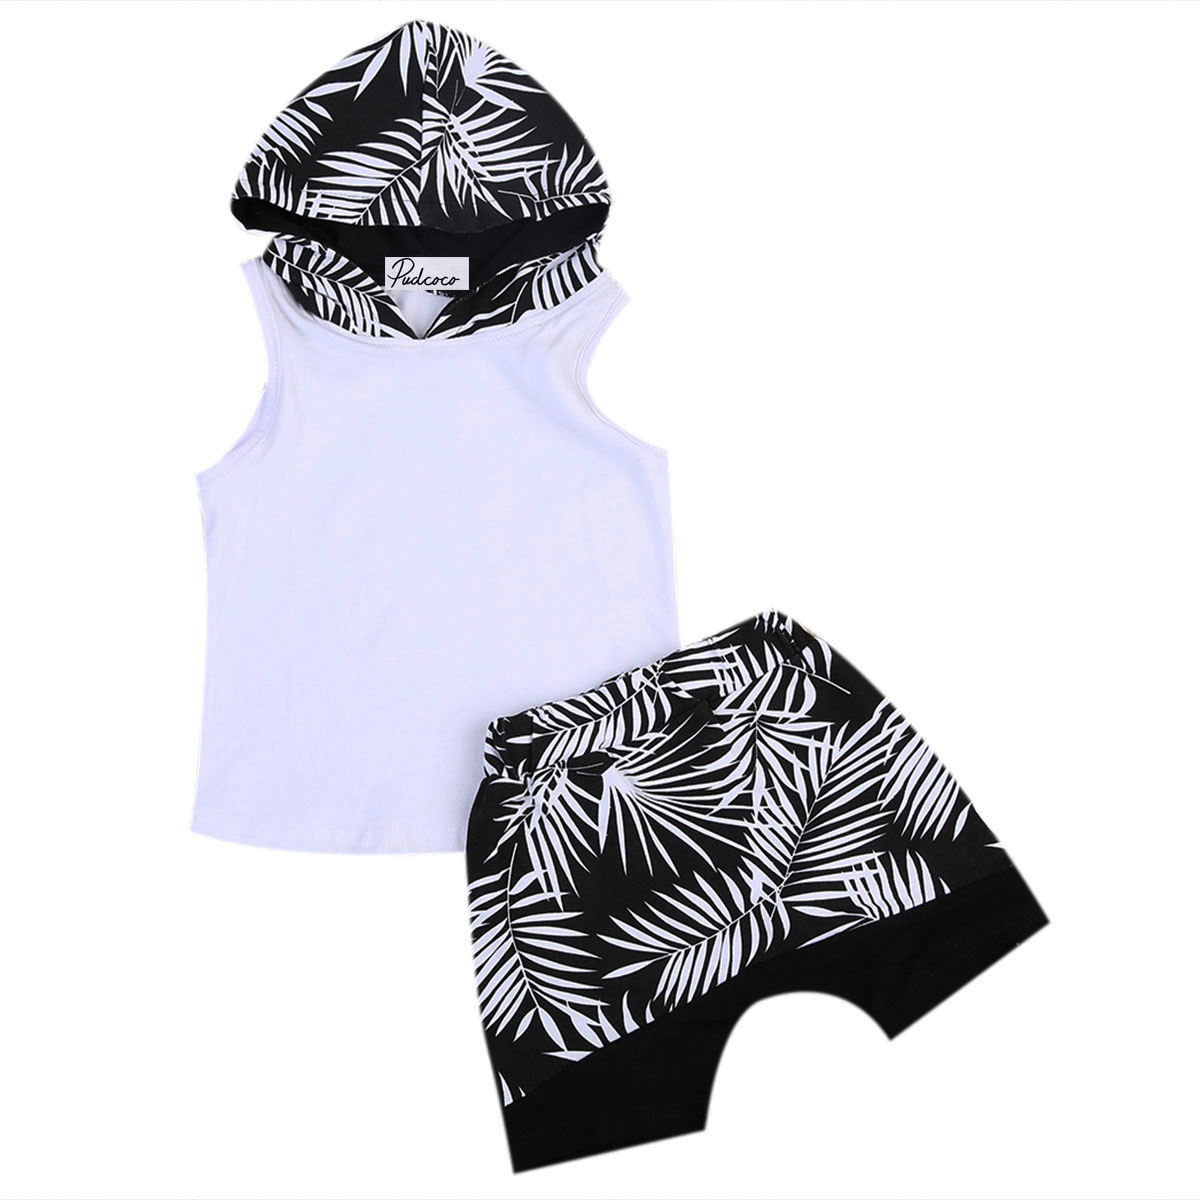 2pcs 1 6t Toddler Kids Baby Boys White Clothes Hoodie